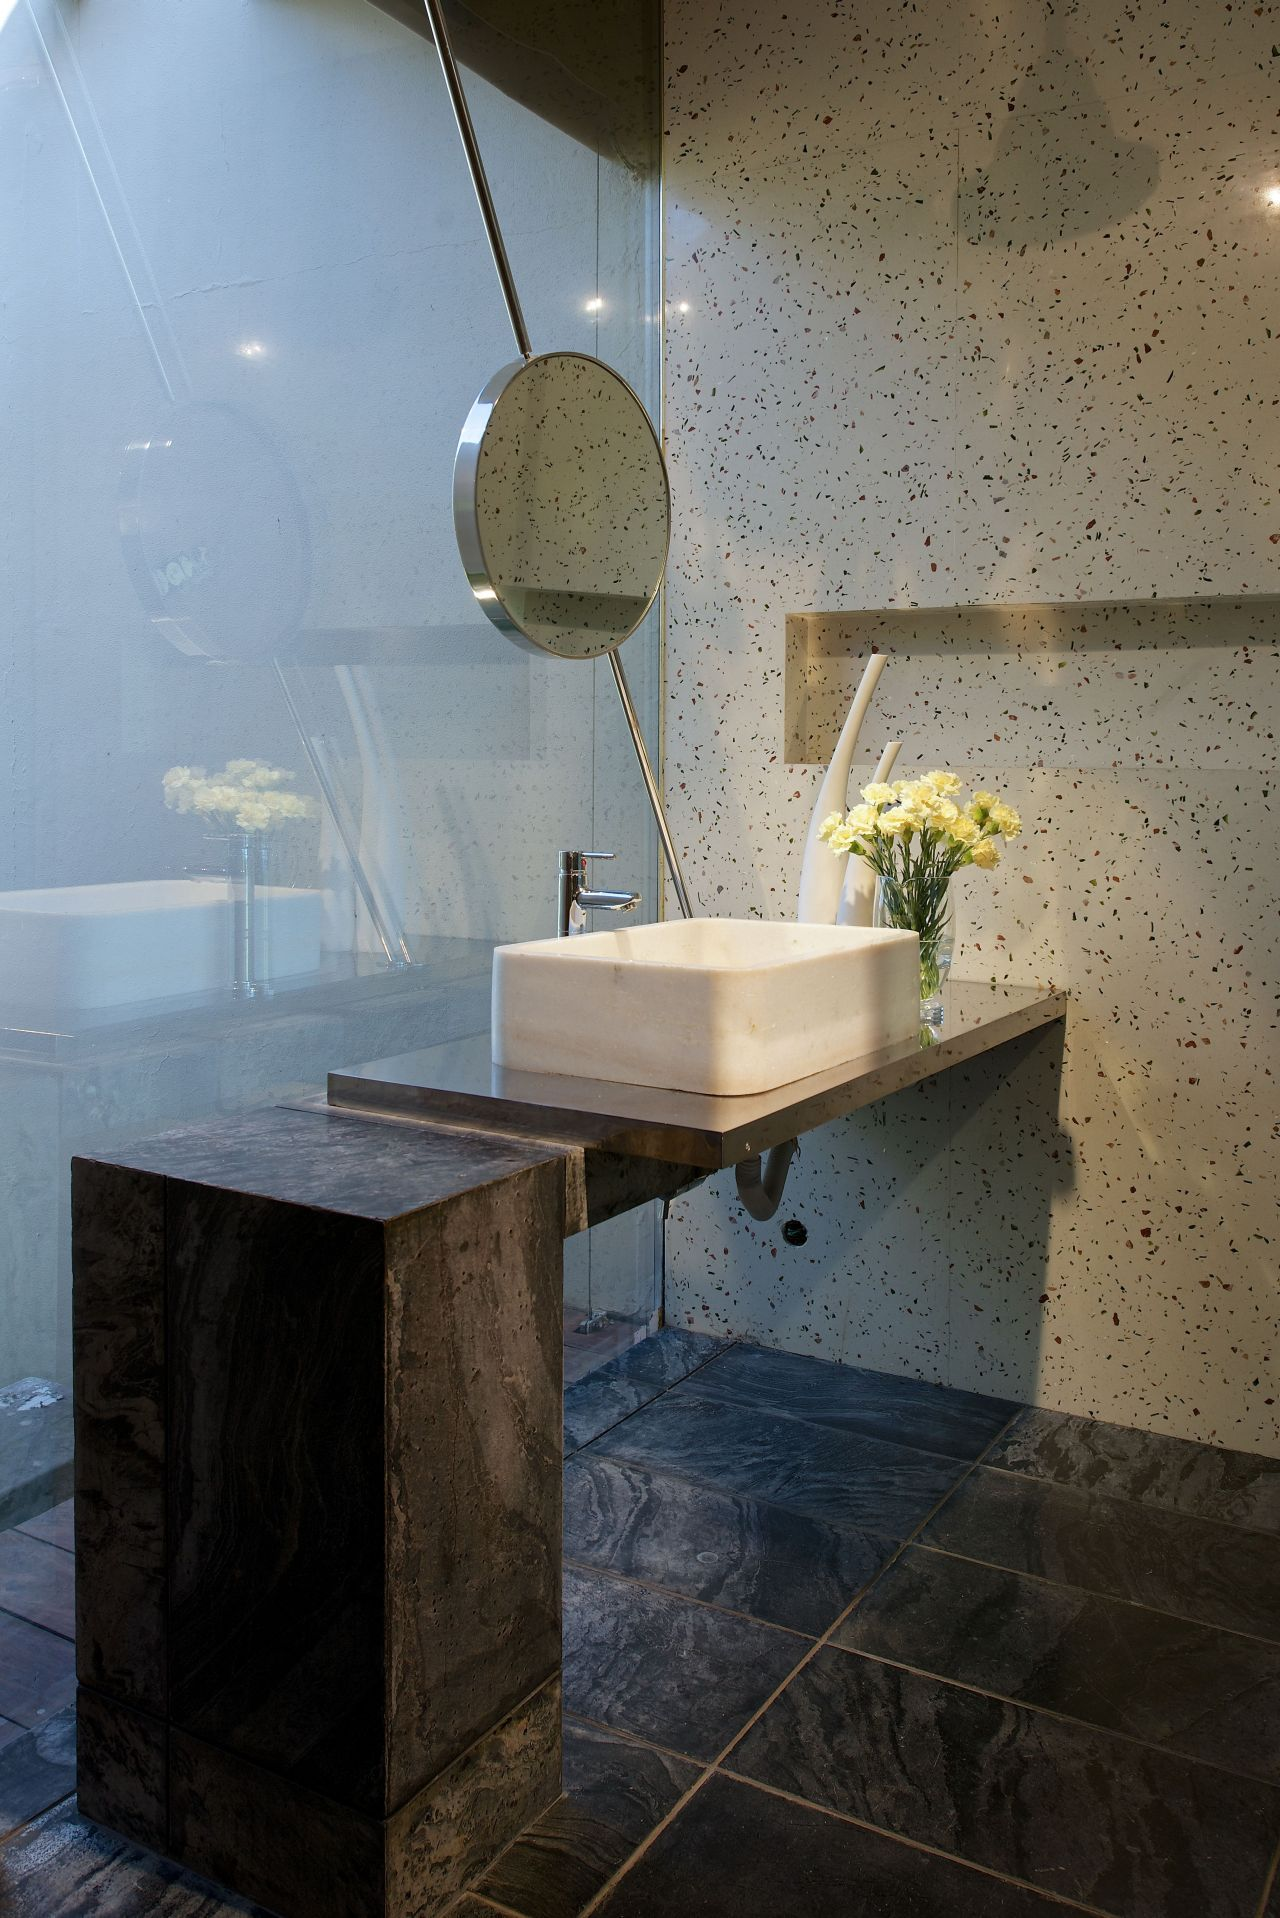 Stupendous Concrete Bathroom Sinks That Make A Strong Statement Without Download Free Architecture Designs Xerocsunscenecom